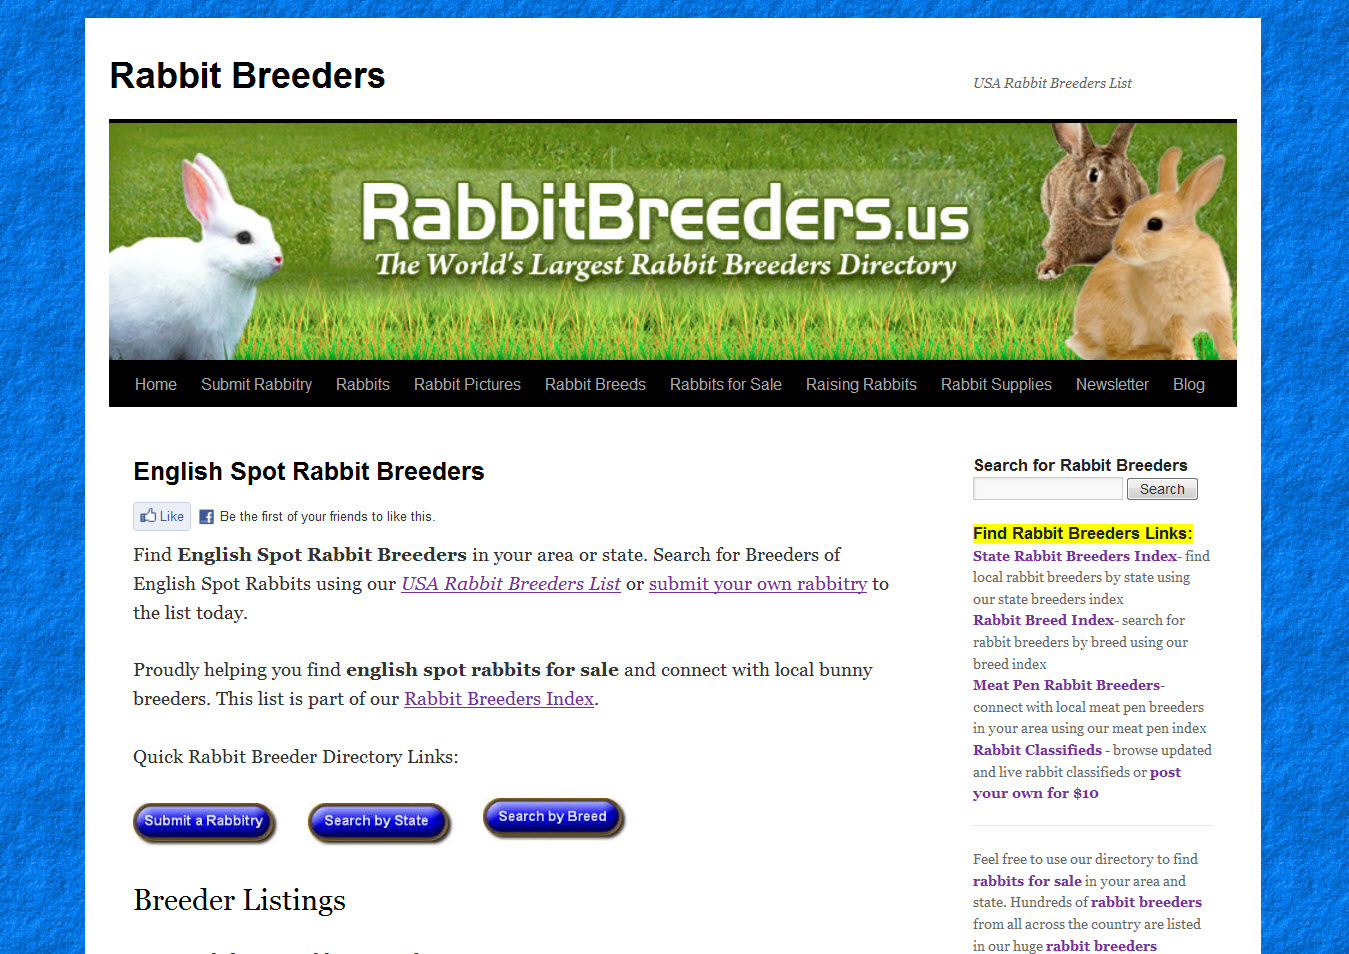 English Spot Rabbits for Sale